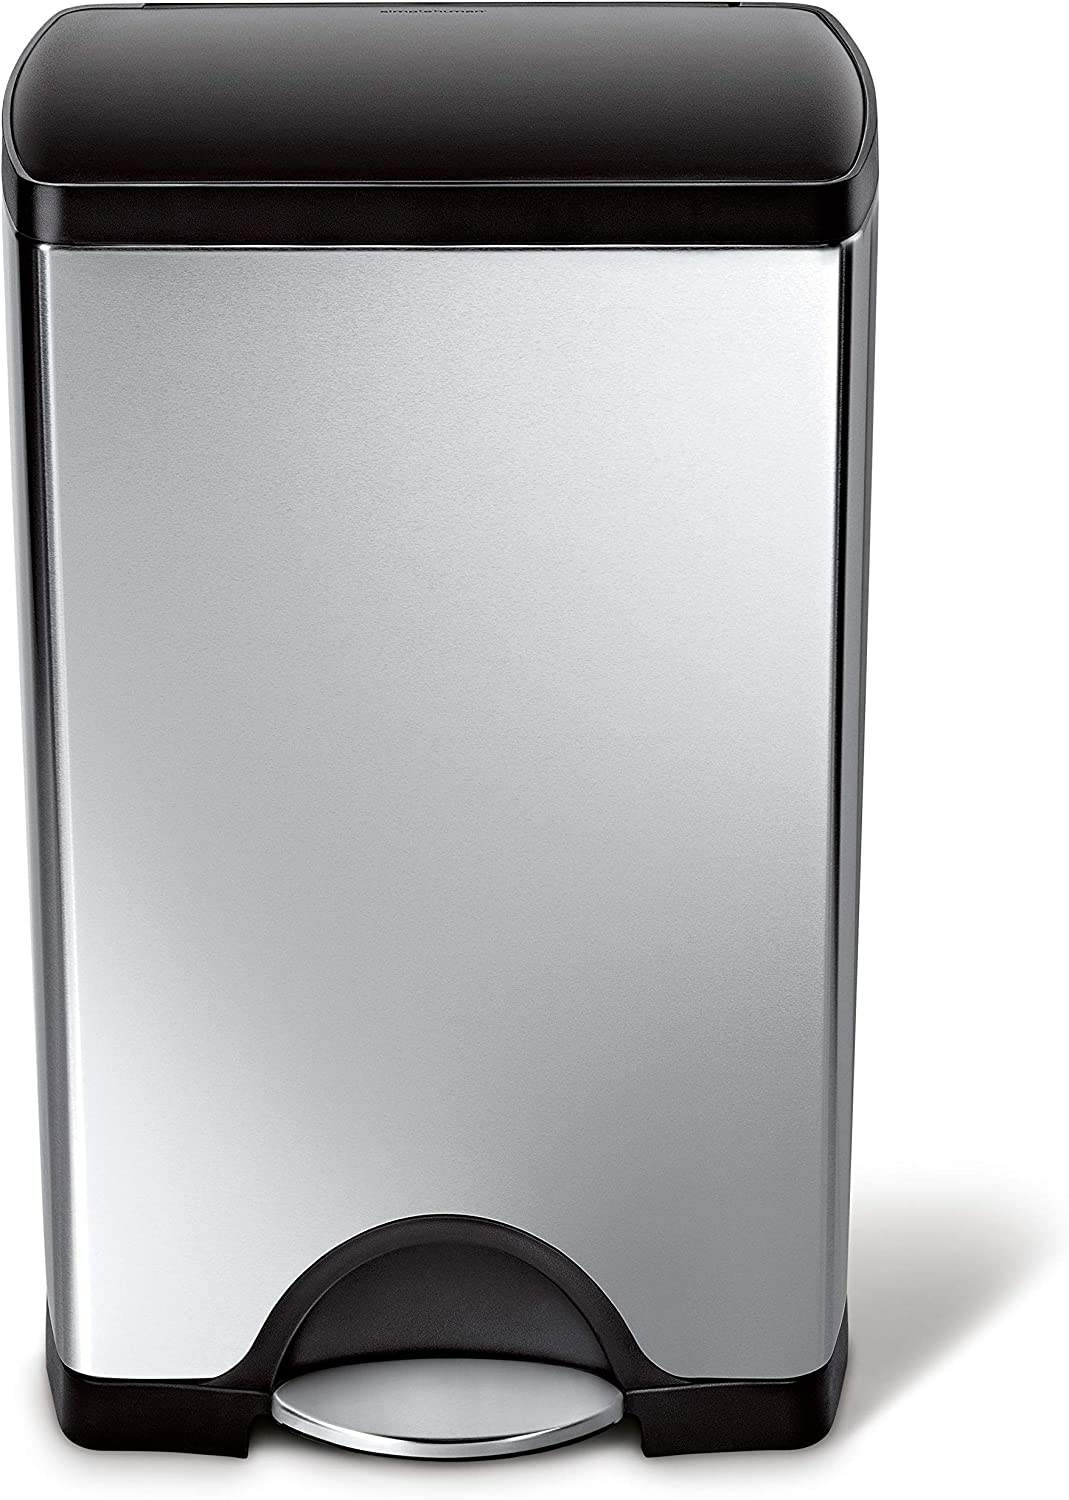 B0016L679A simplehuman 38 Liter / 10 Gallon Stainless Steel Rectangular Kitchen Step Trash Can, Brushed Stainless Steel with Plastic Lid 81BZcoOrP4L.SL1500_